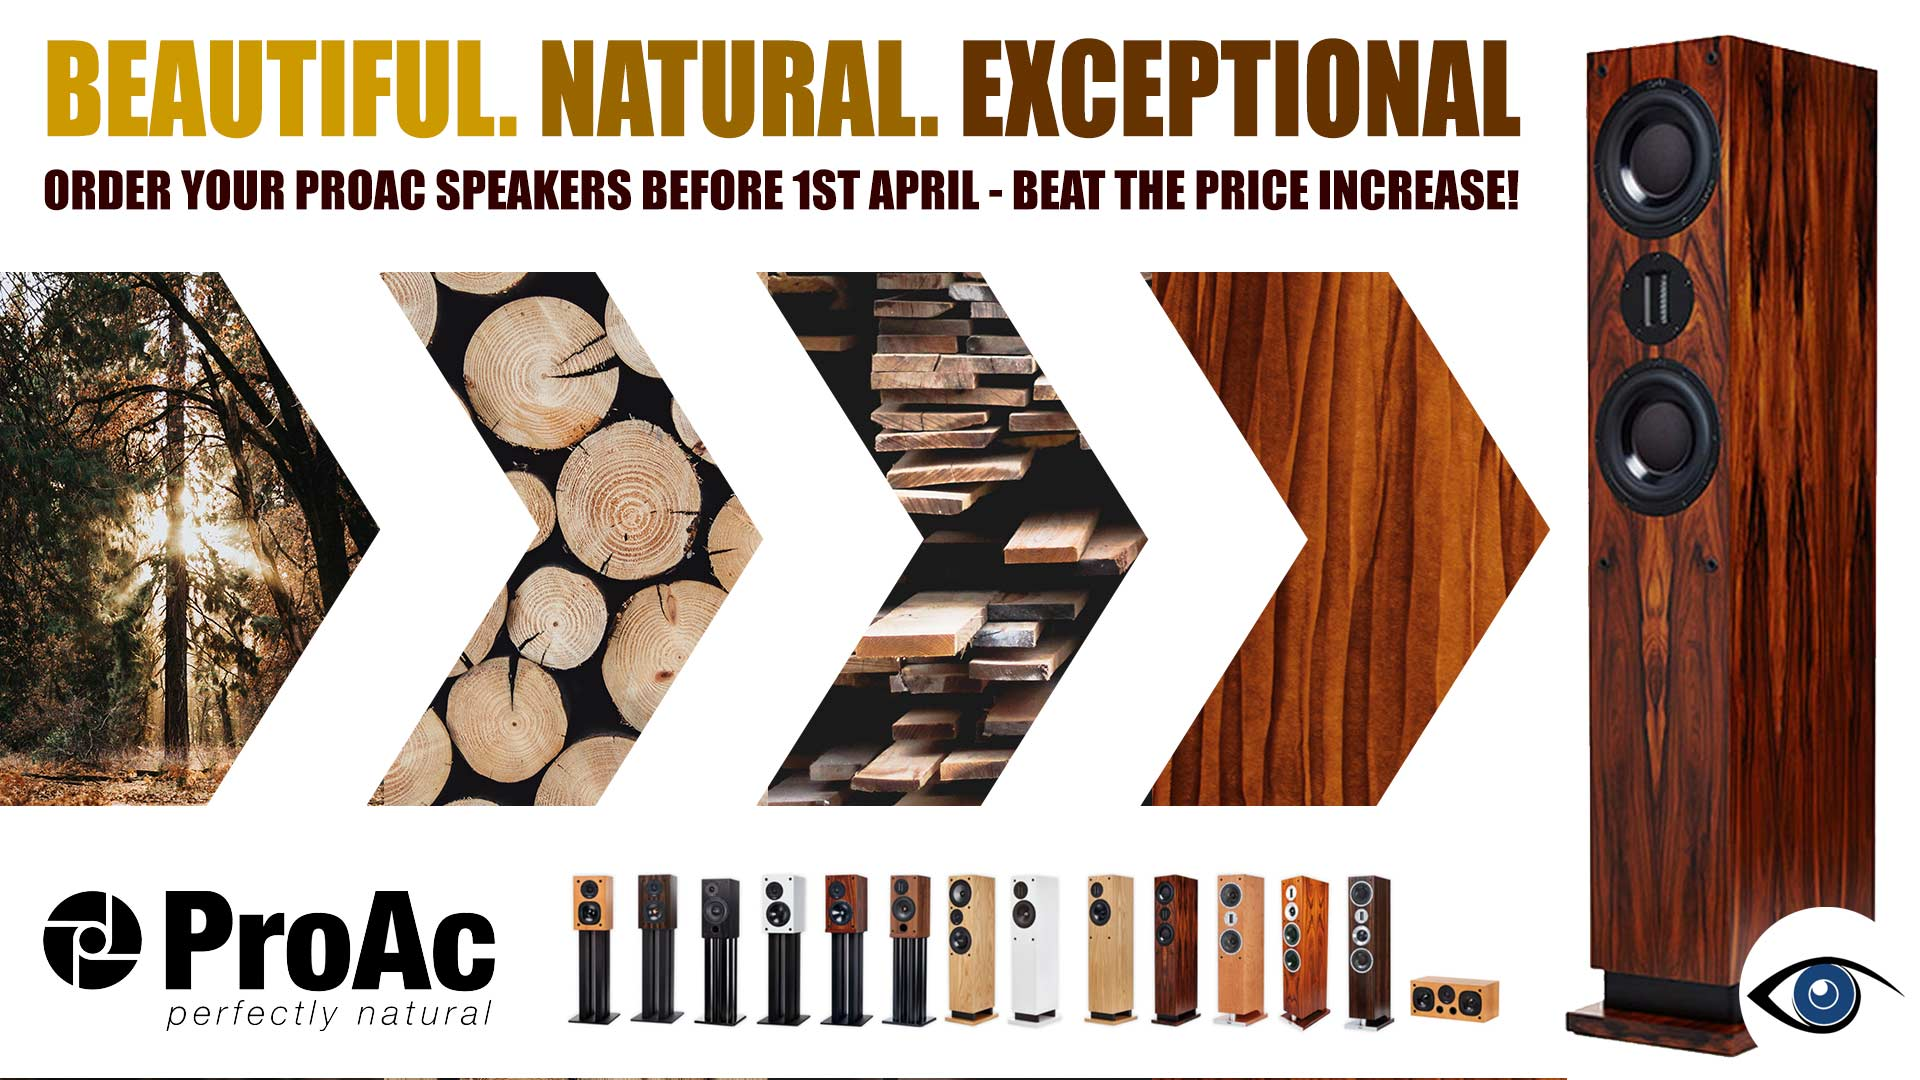 Order Your ProAC Speakers Before 1st April 2020 | Unilet Sound & Vision